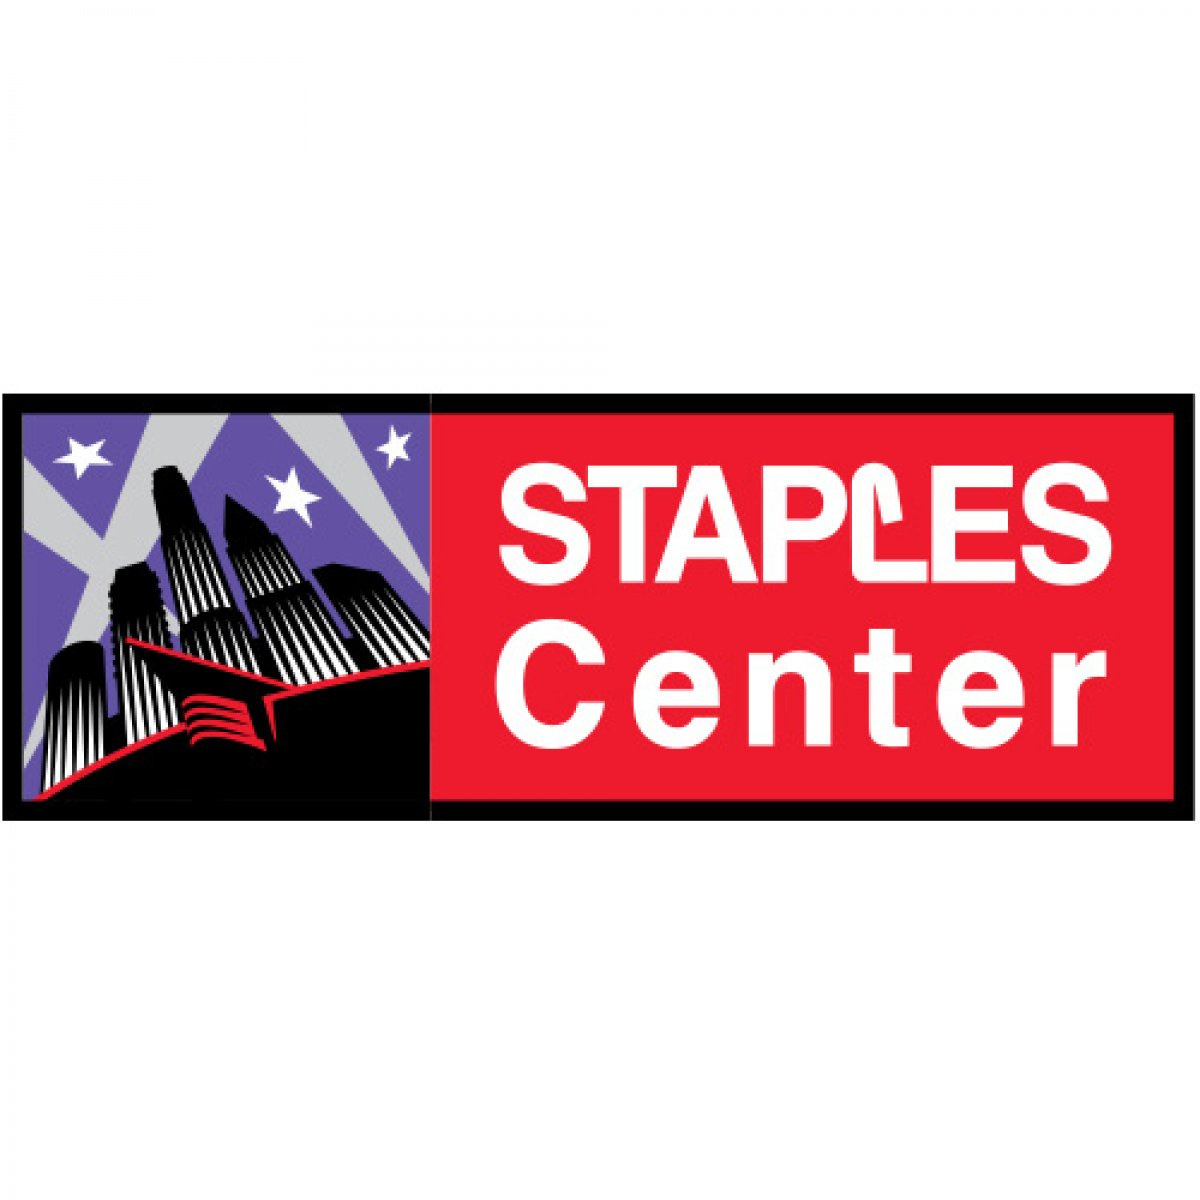 Energy Initiatives at STAPLES Center.